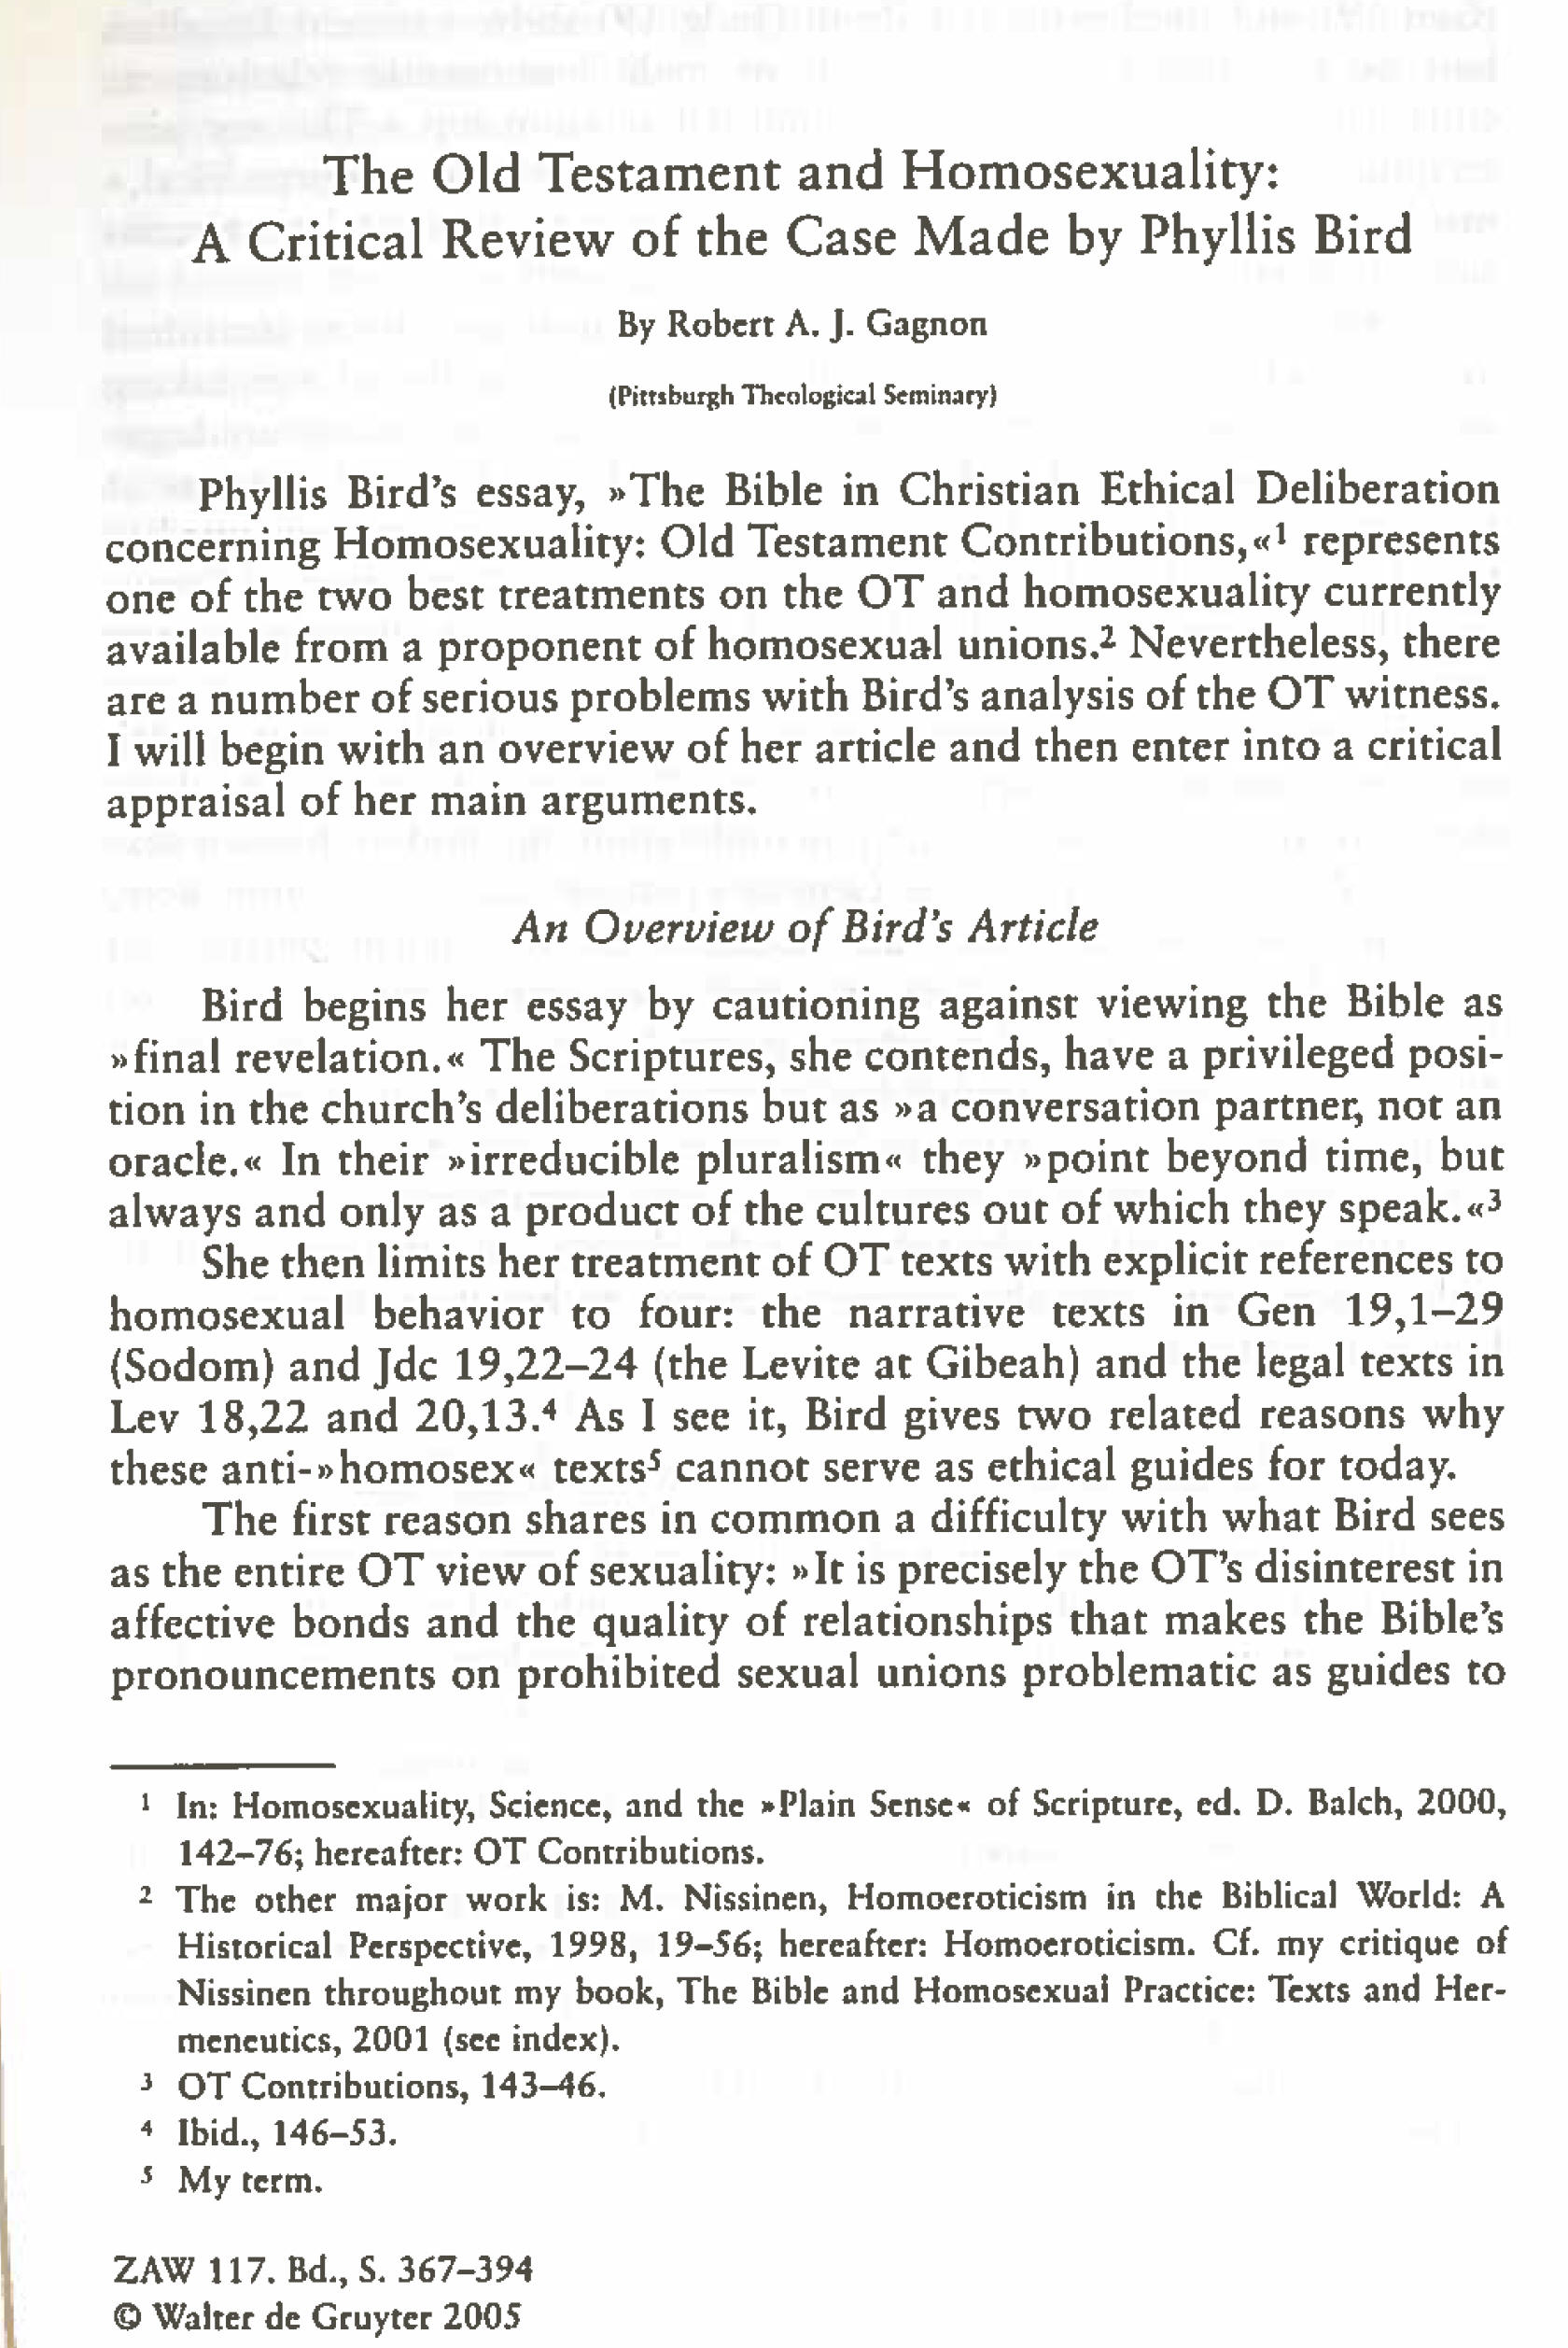 New testament vs old testament homosexuality and christianity